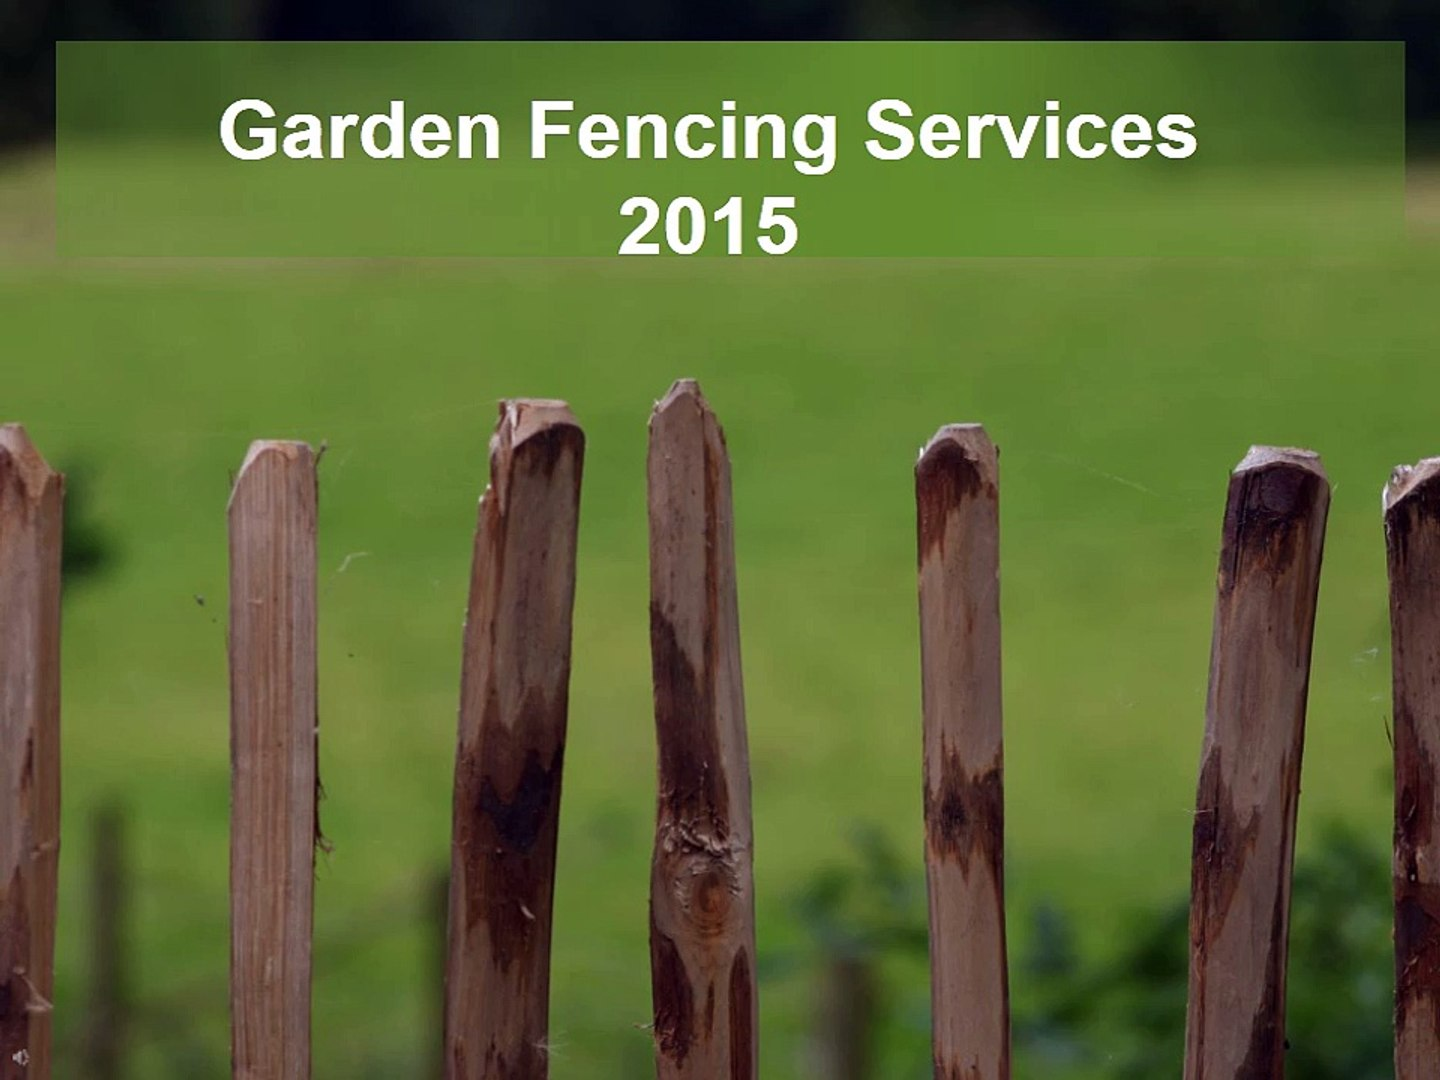 Improve Home and Garden Security With Garden fencing London